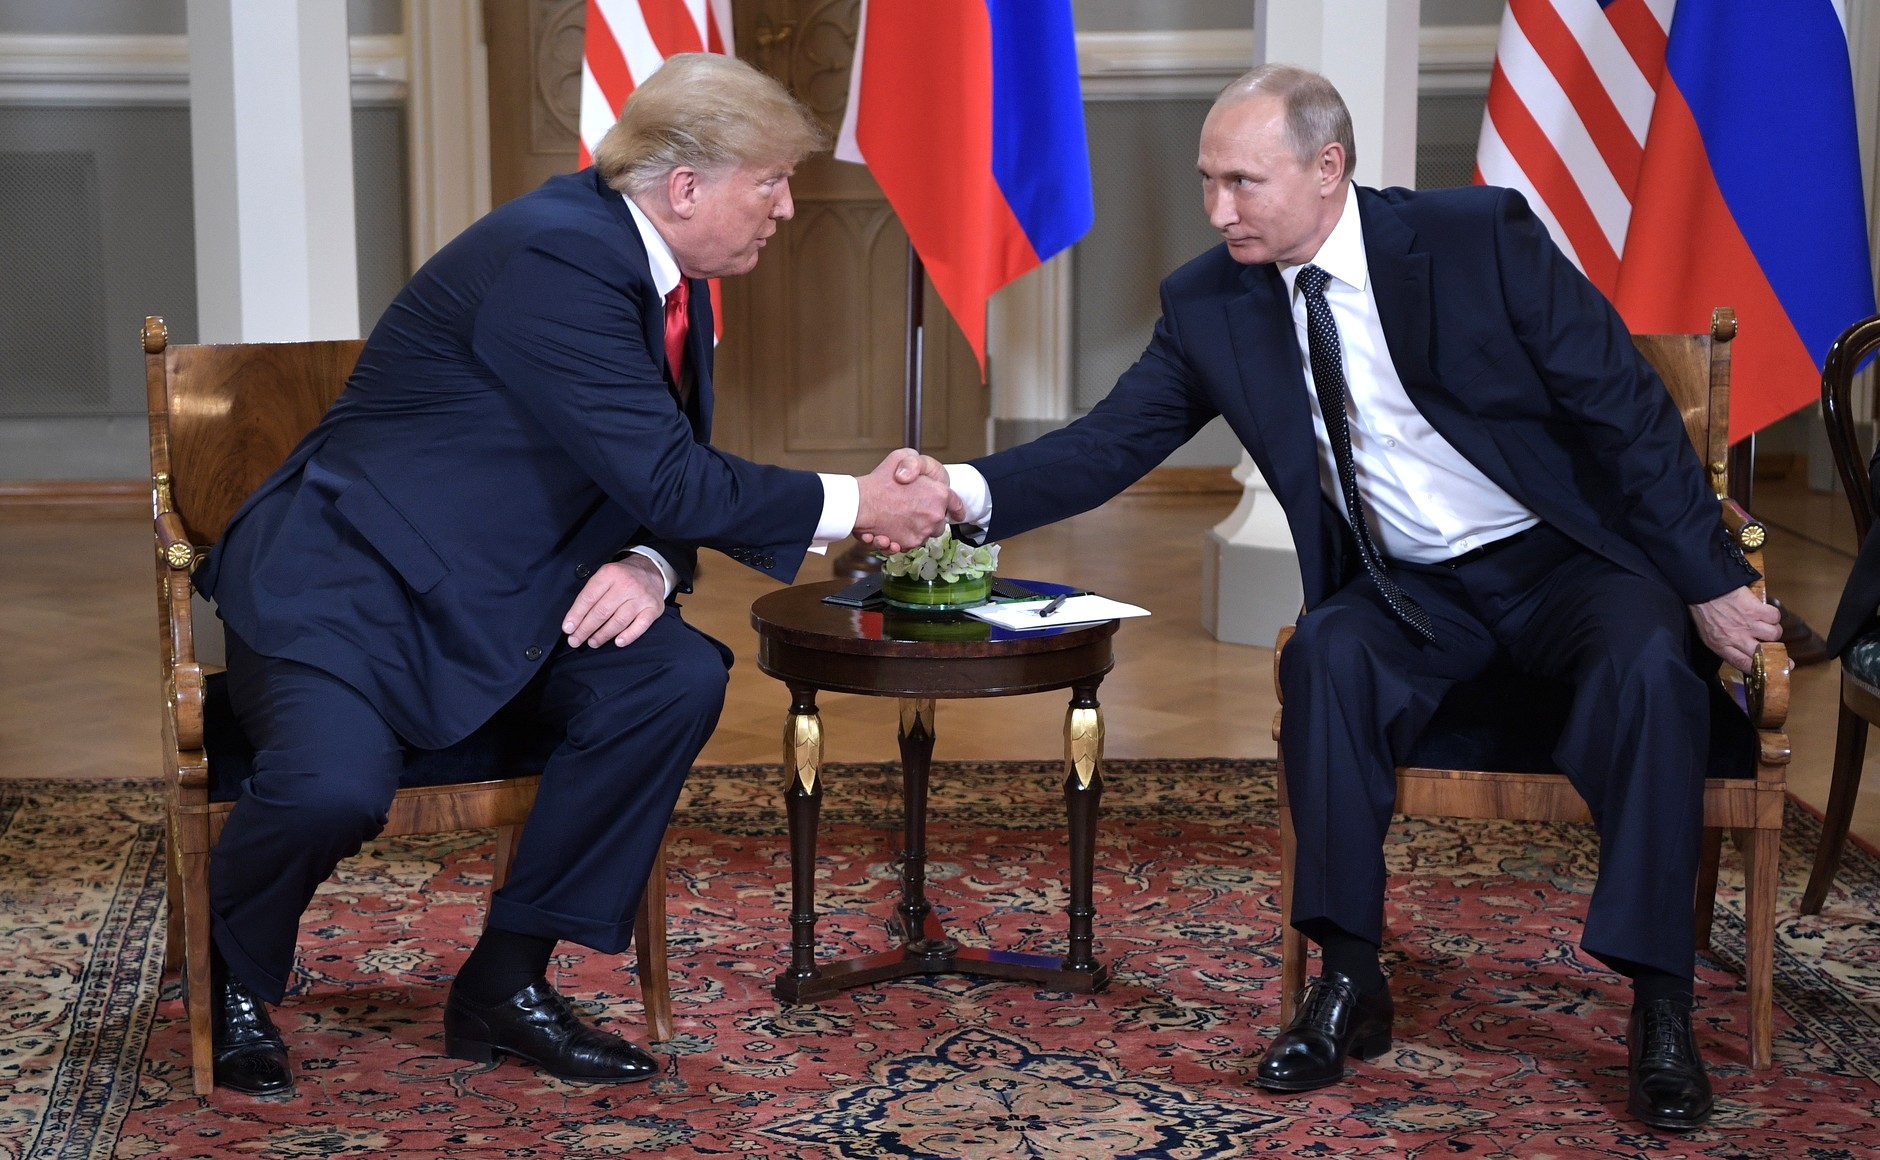 U.S. President Donald Trump (left) and Russian President Vladimir Putin (right) meet in Helsinki, Finland in July 2018. Photo Credit: Kremlin.ru